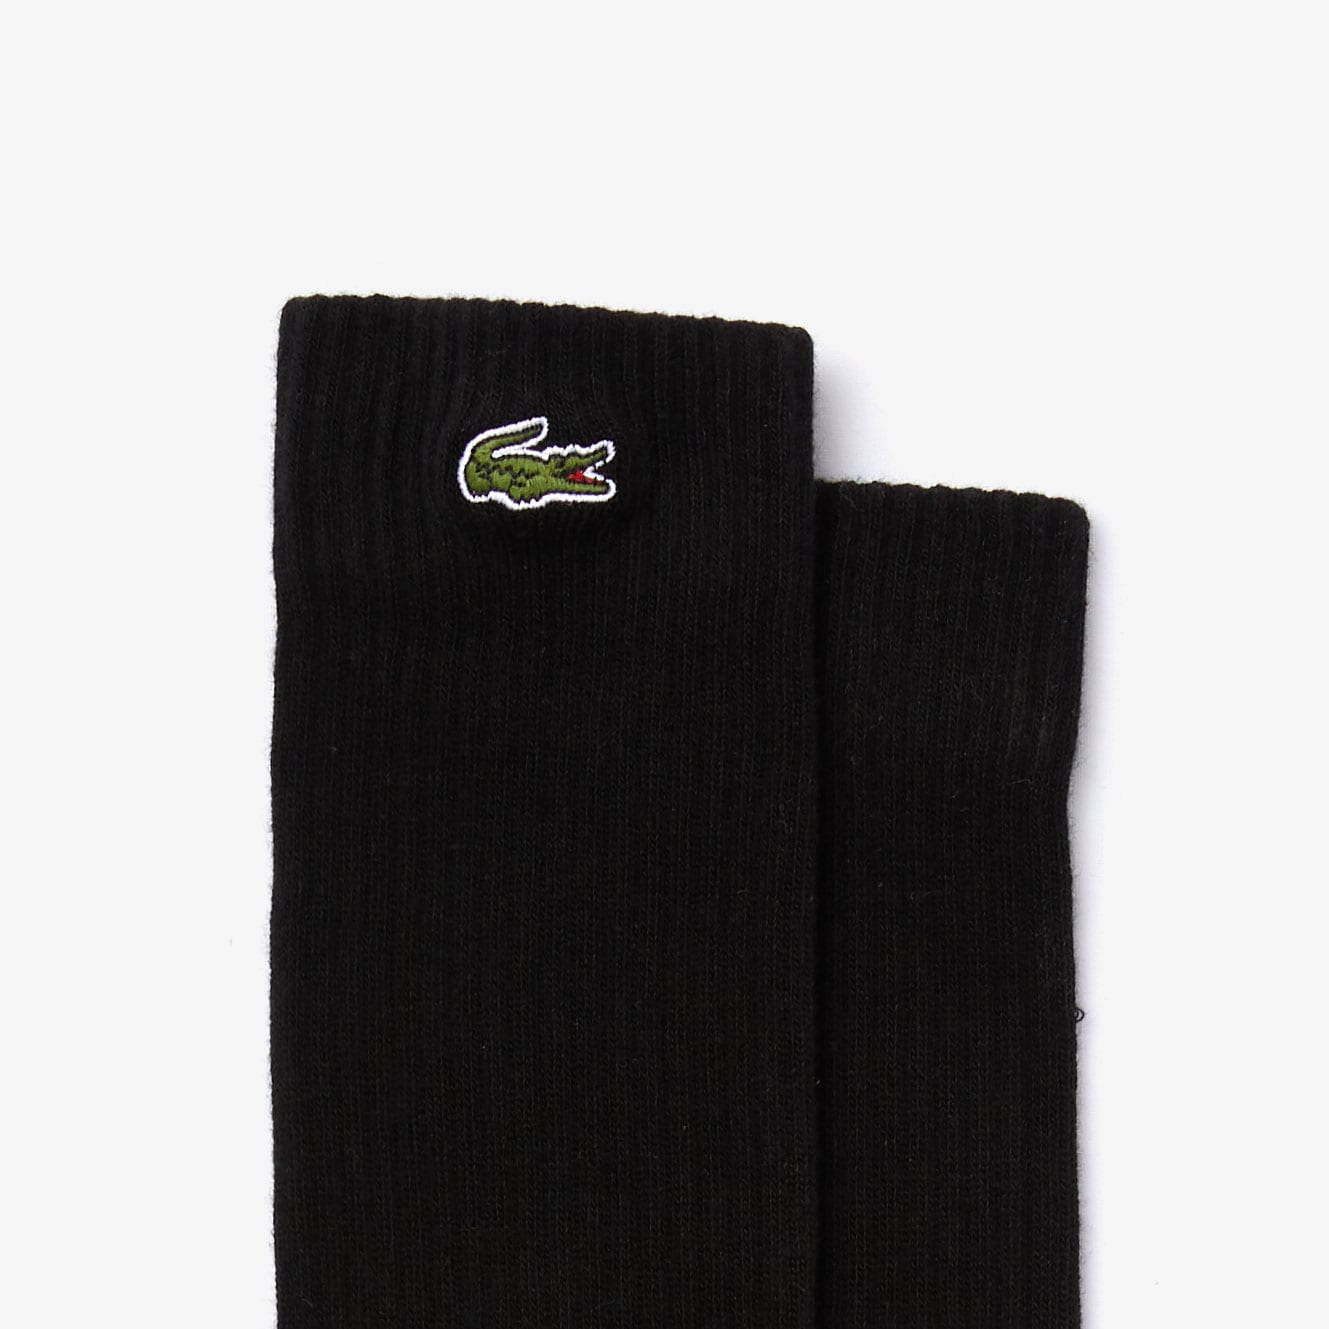 Men's Lacoste SPORT Stretch Cotton Blend High Tennis Socks